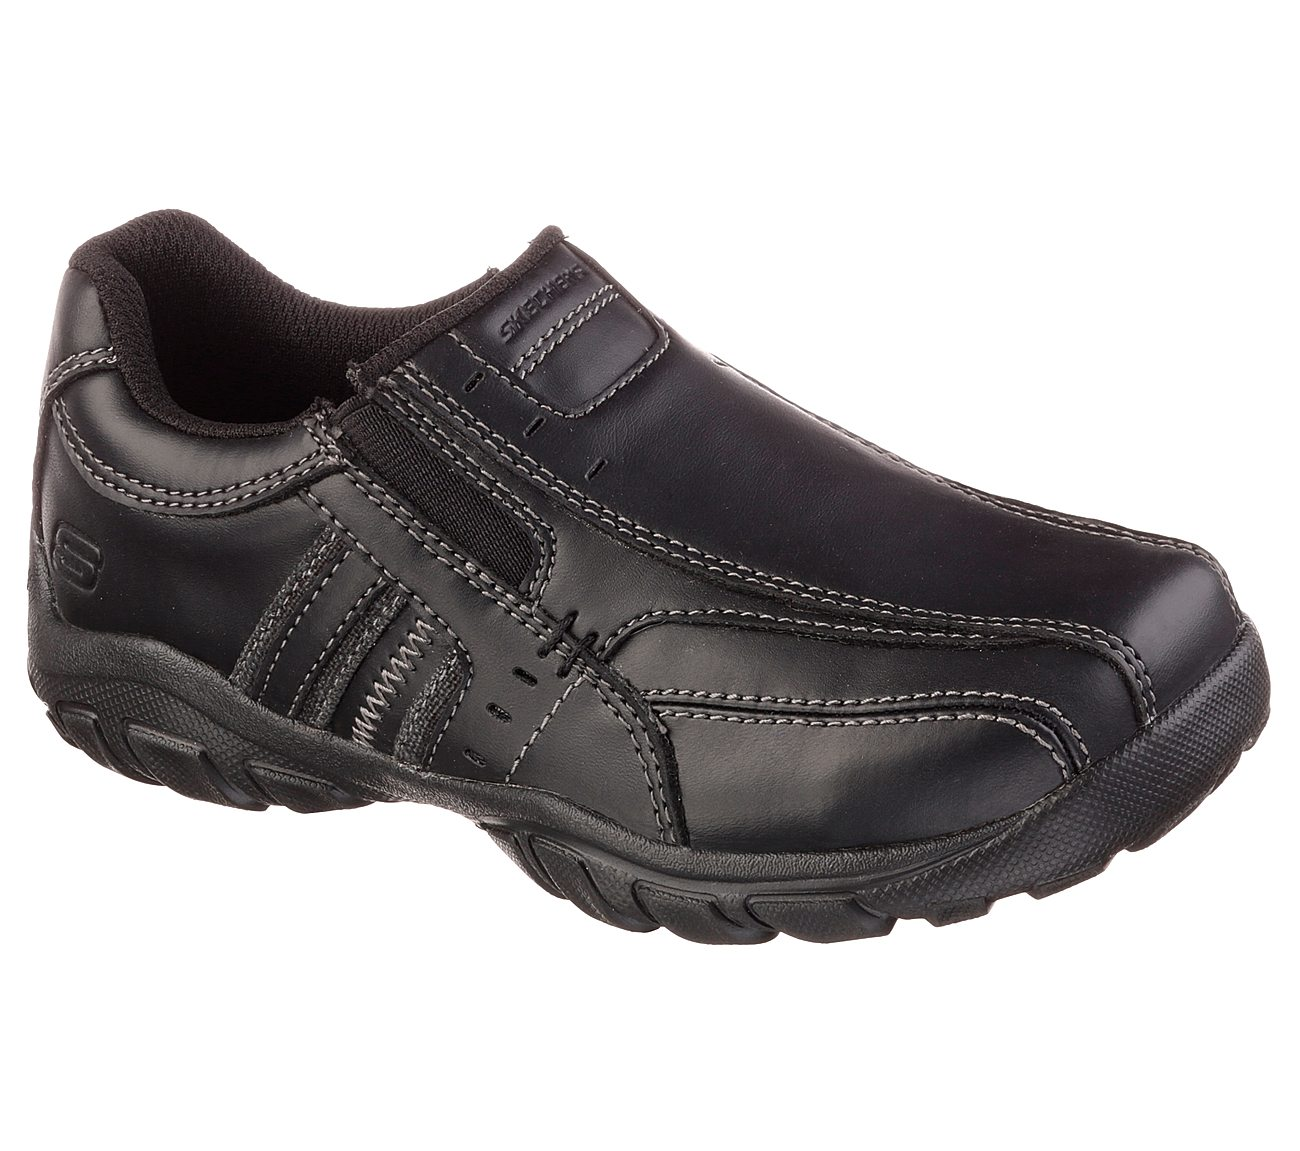 b8c15fe5a0a00 Buy SKECHERS Relaxed Fit  Grambler - Wallace SKECHERS Relaxed Fit ...